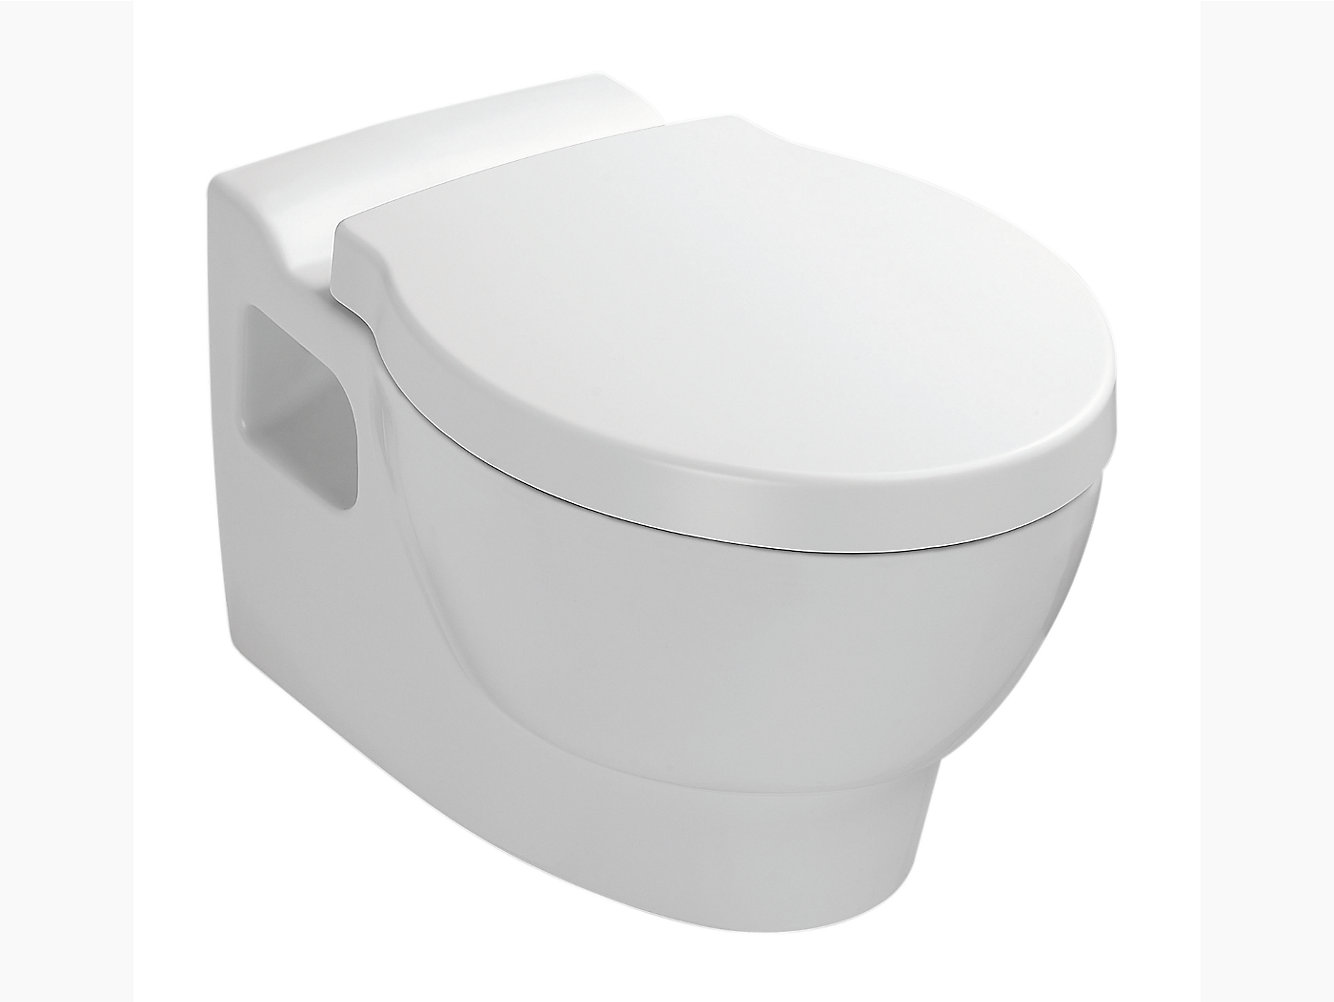 Ove Wall-hung toilet with Quiet-Close(TM) seat and cover | K-17647T ...